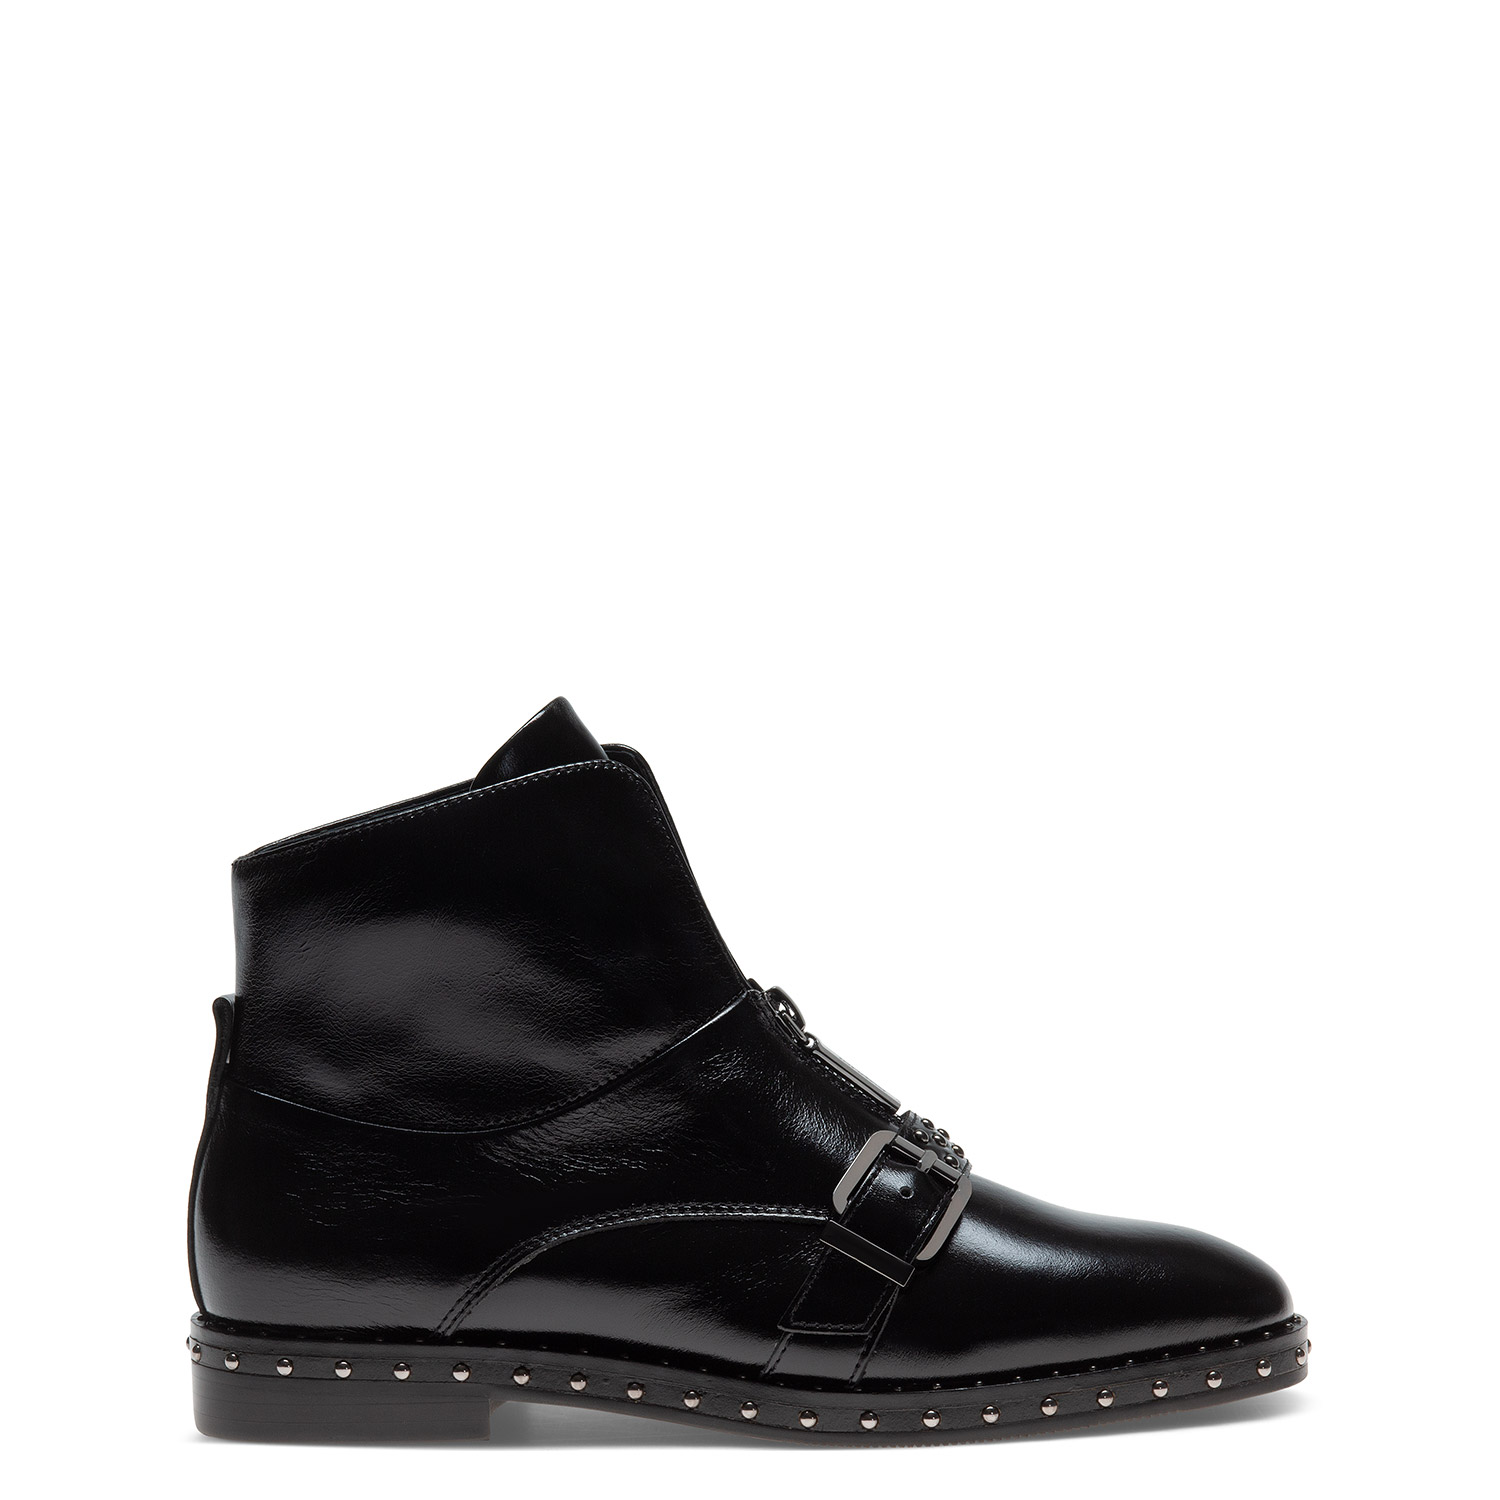 Women's ankle boots PAZOLINI JH-VDR3-1